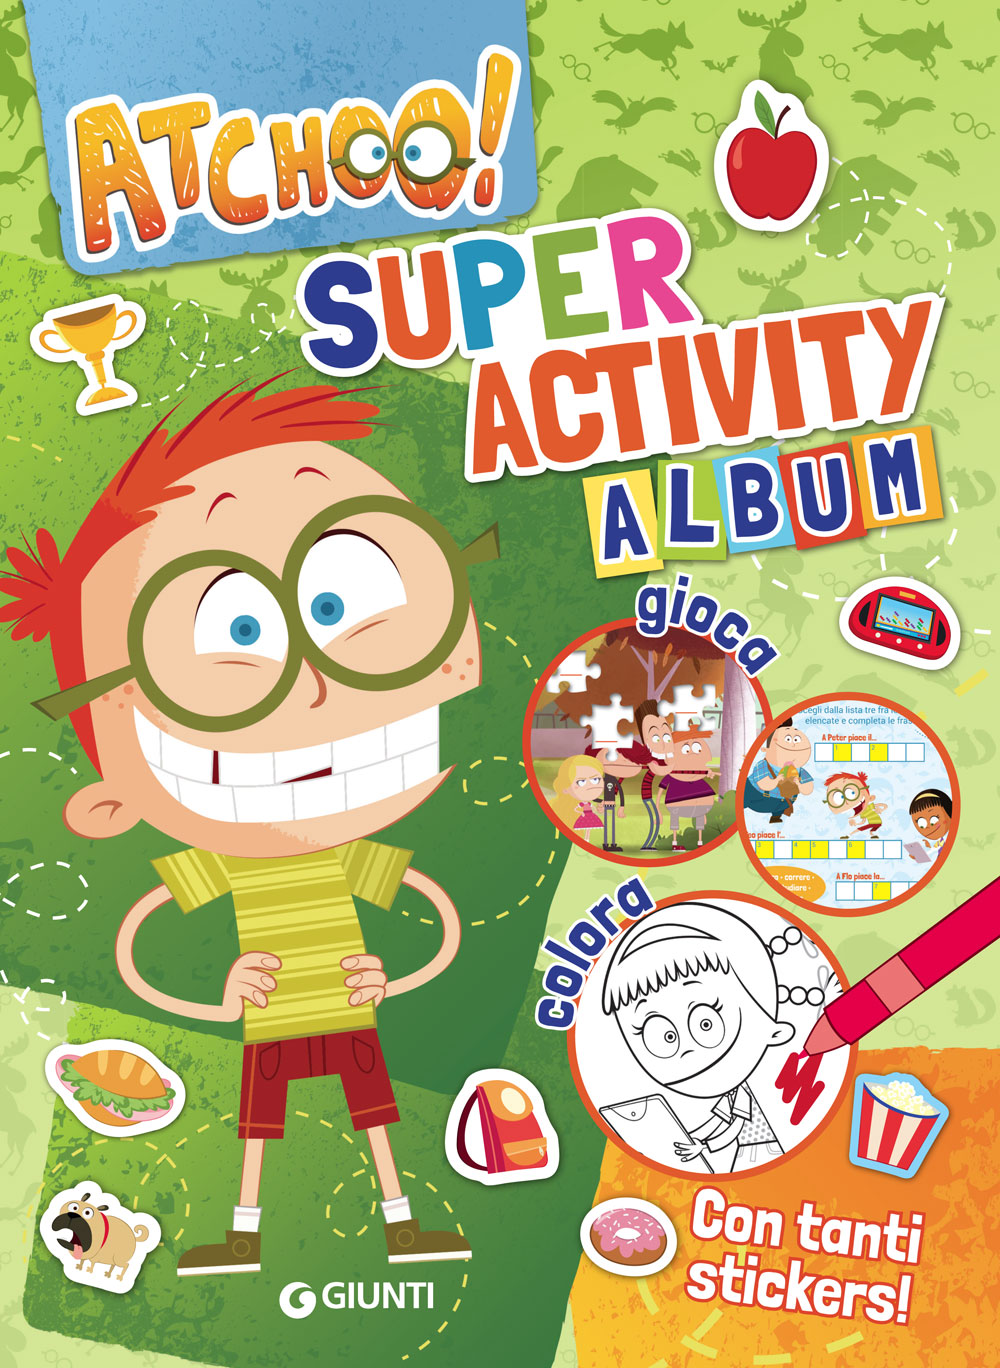 Atchoo! Super Activity Album